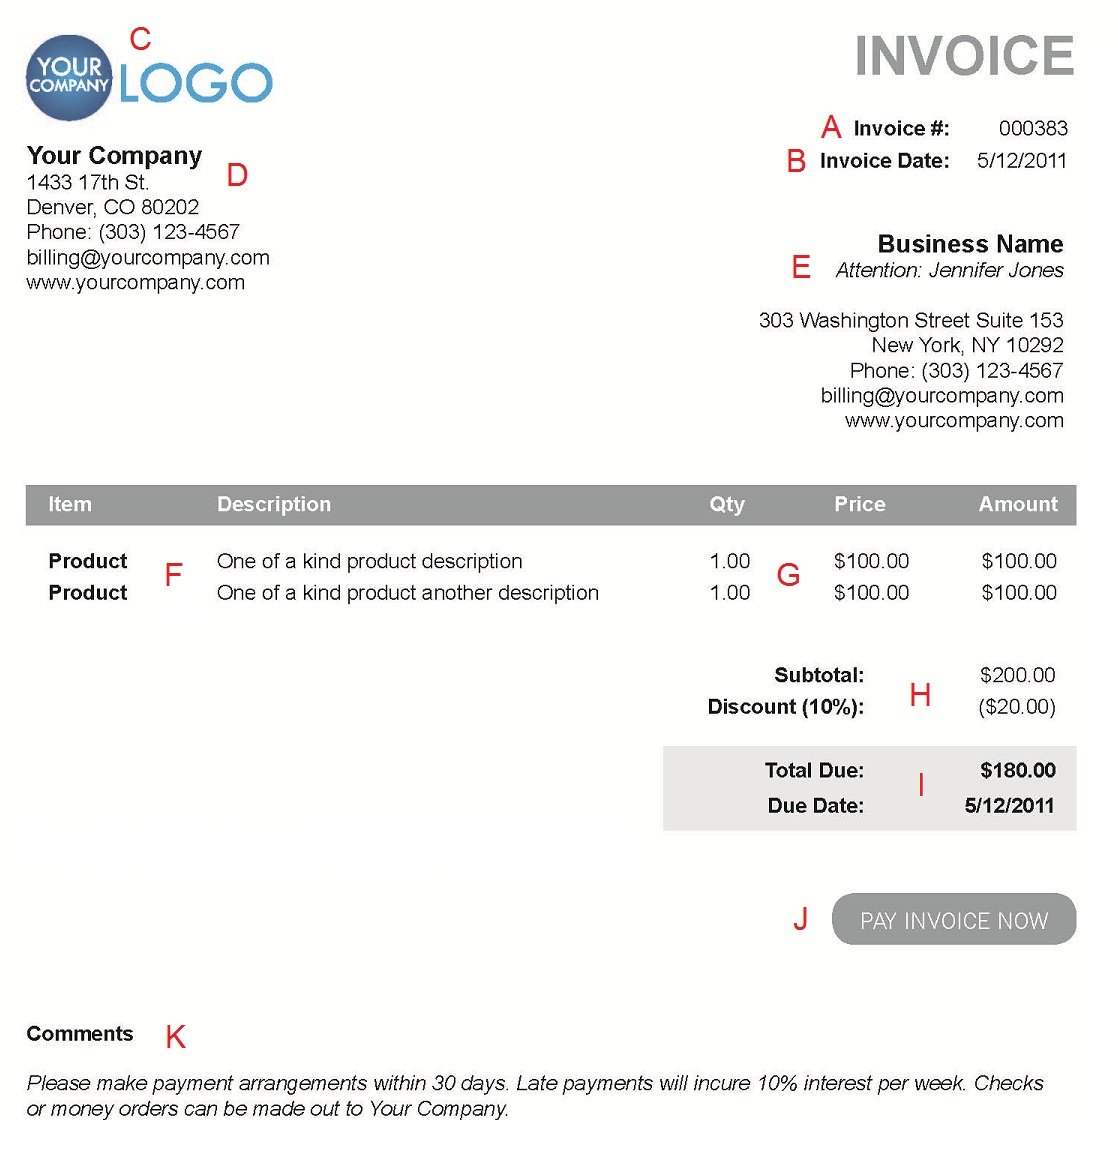 Pigbrotherus  Pretty The  Different Sections Of An Electronic Payment Invoice With Glamorous A  With Attractive How To Create A Receipt In Excel Also Sold Car Receipt In Addition Payment Received Receipt Template And Sample Of Receipt Template As Well As Target Refund Policy With Receipt Additionally Receipt To Make Soup From Paysimplecom With Pigbrotherus  Glamorous The  Different Sections Of An Electronic Payment Invoice With Attractive A  And Pretty How To Create A Receipt In Excel Also Sold Car Receipt In Addition Payment Received Receipt Template From Paysimplecom